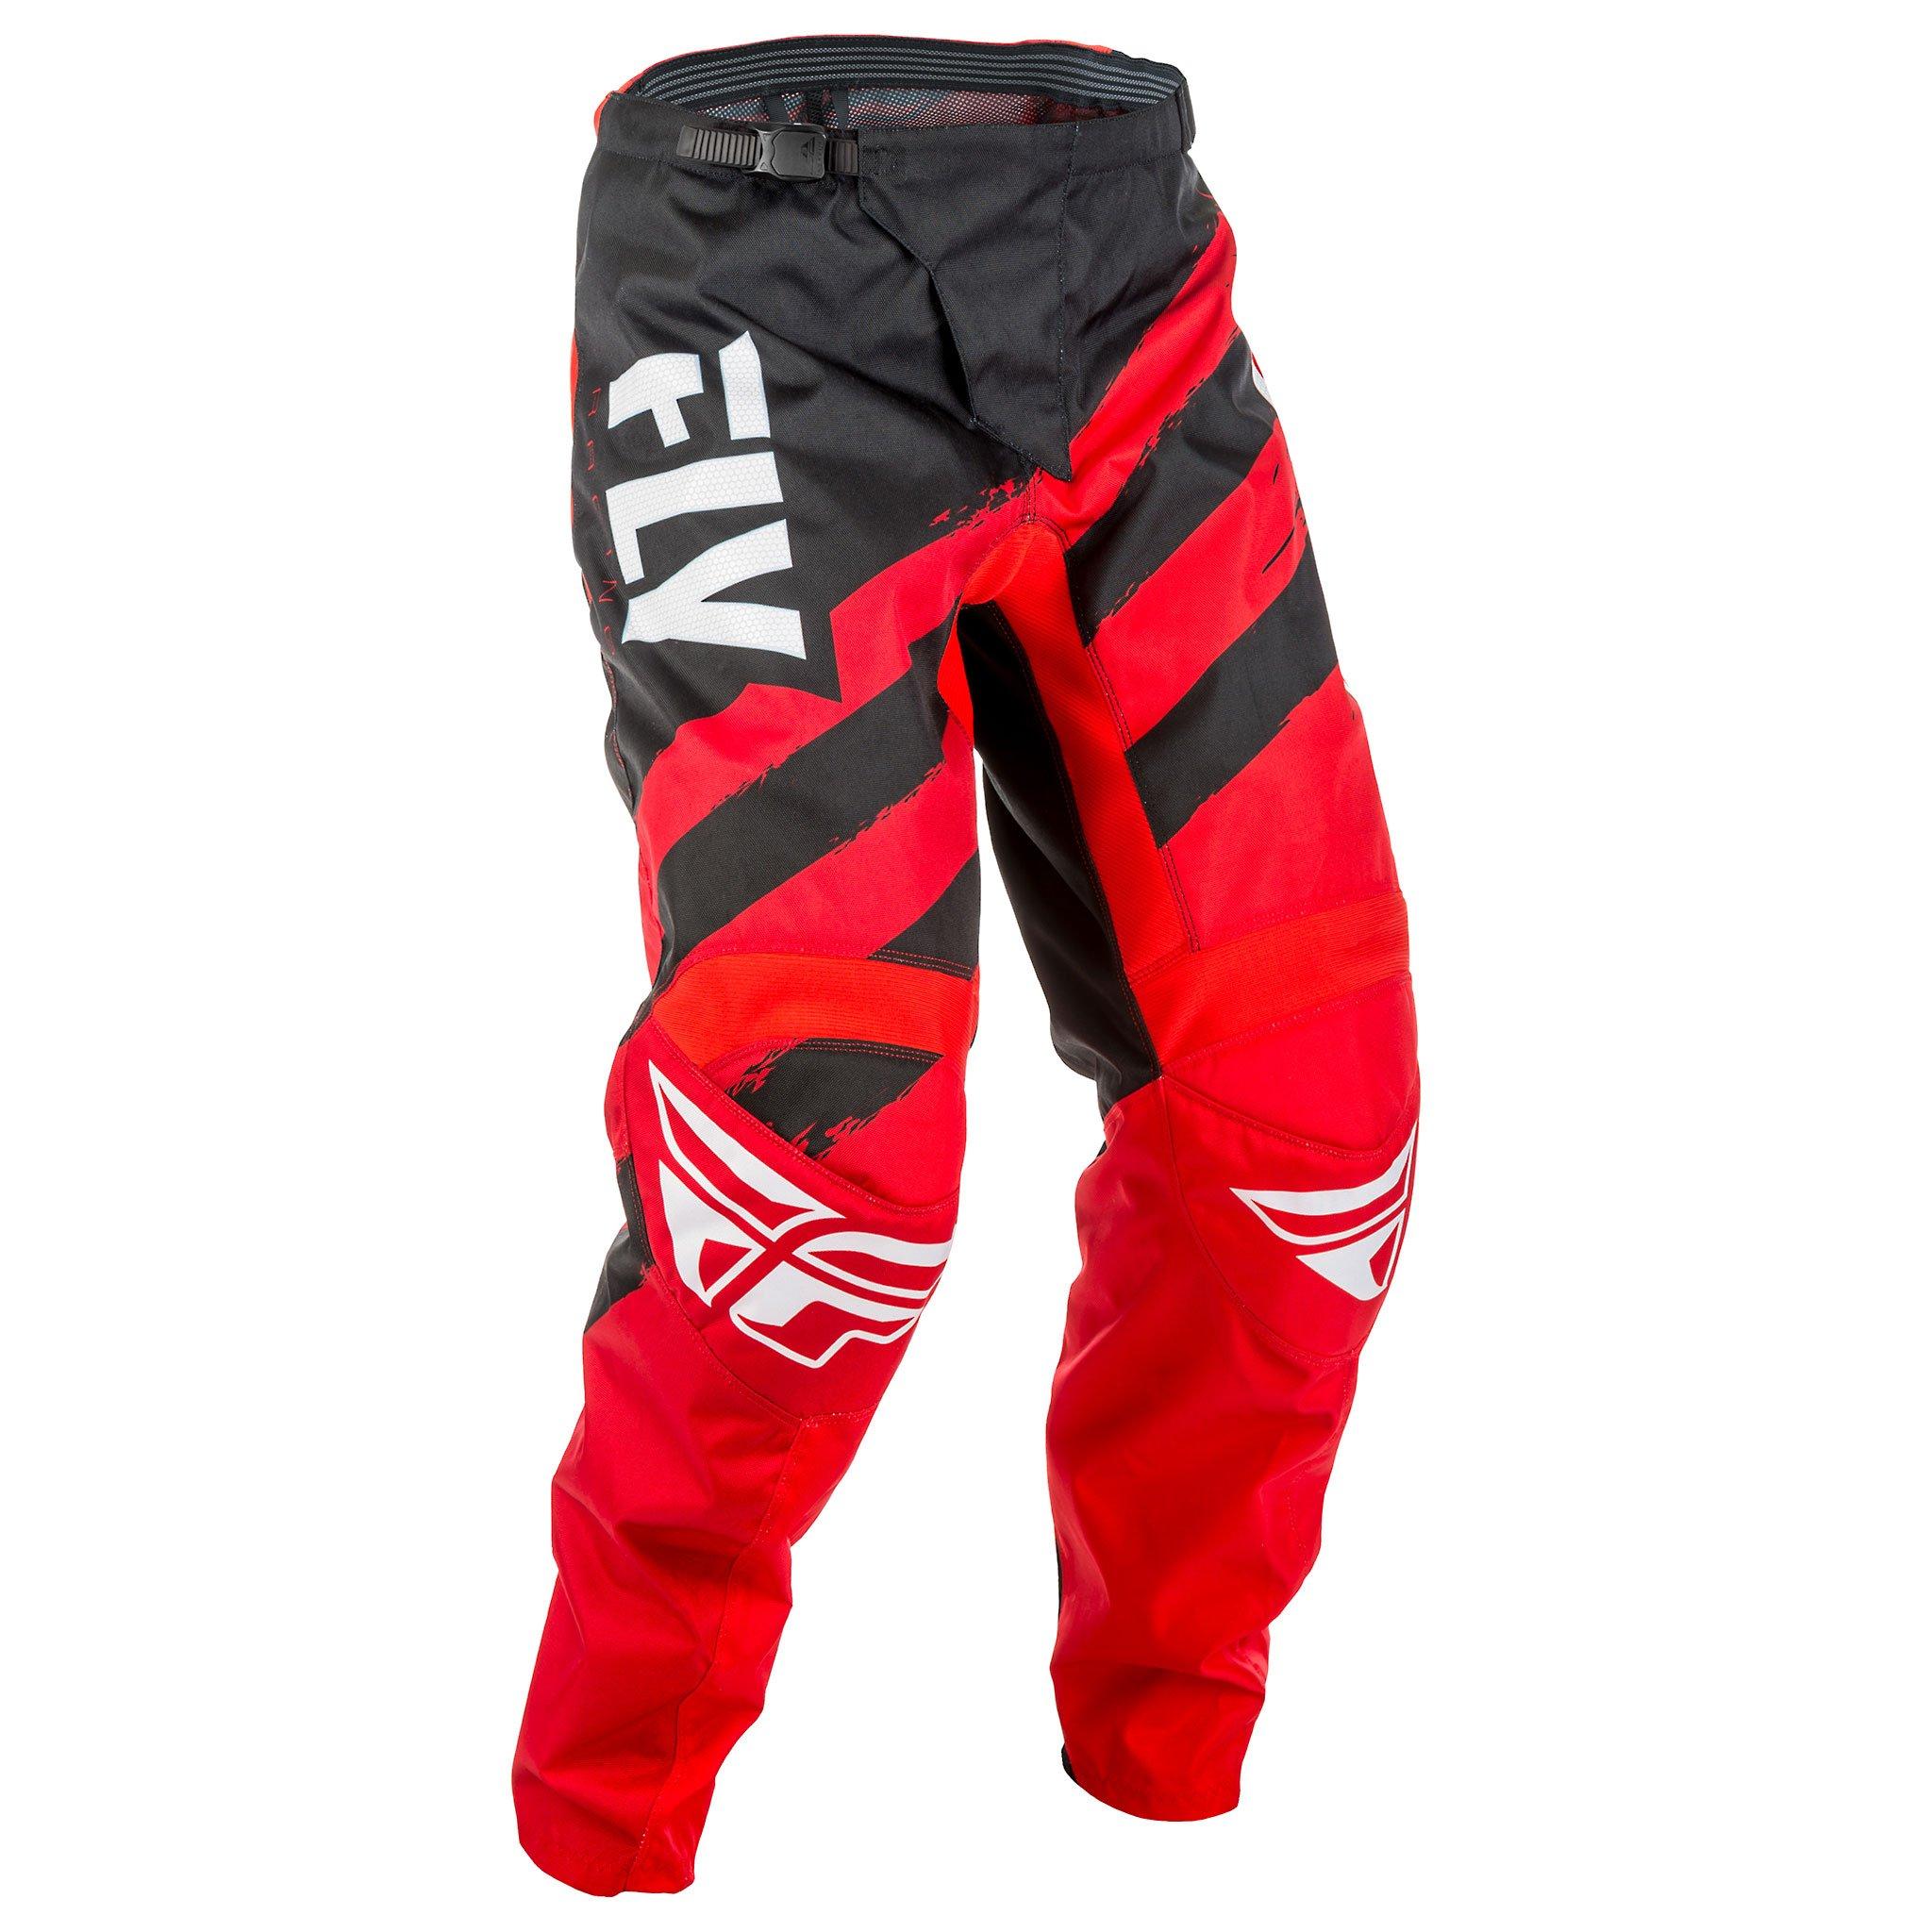 Fly Racing Men's Pants(Red/Black, Size 26),1 Pack